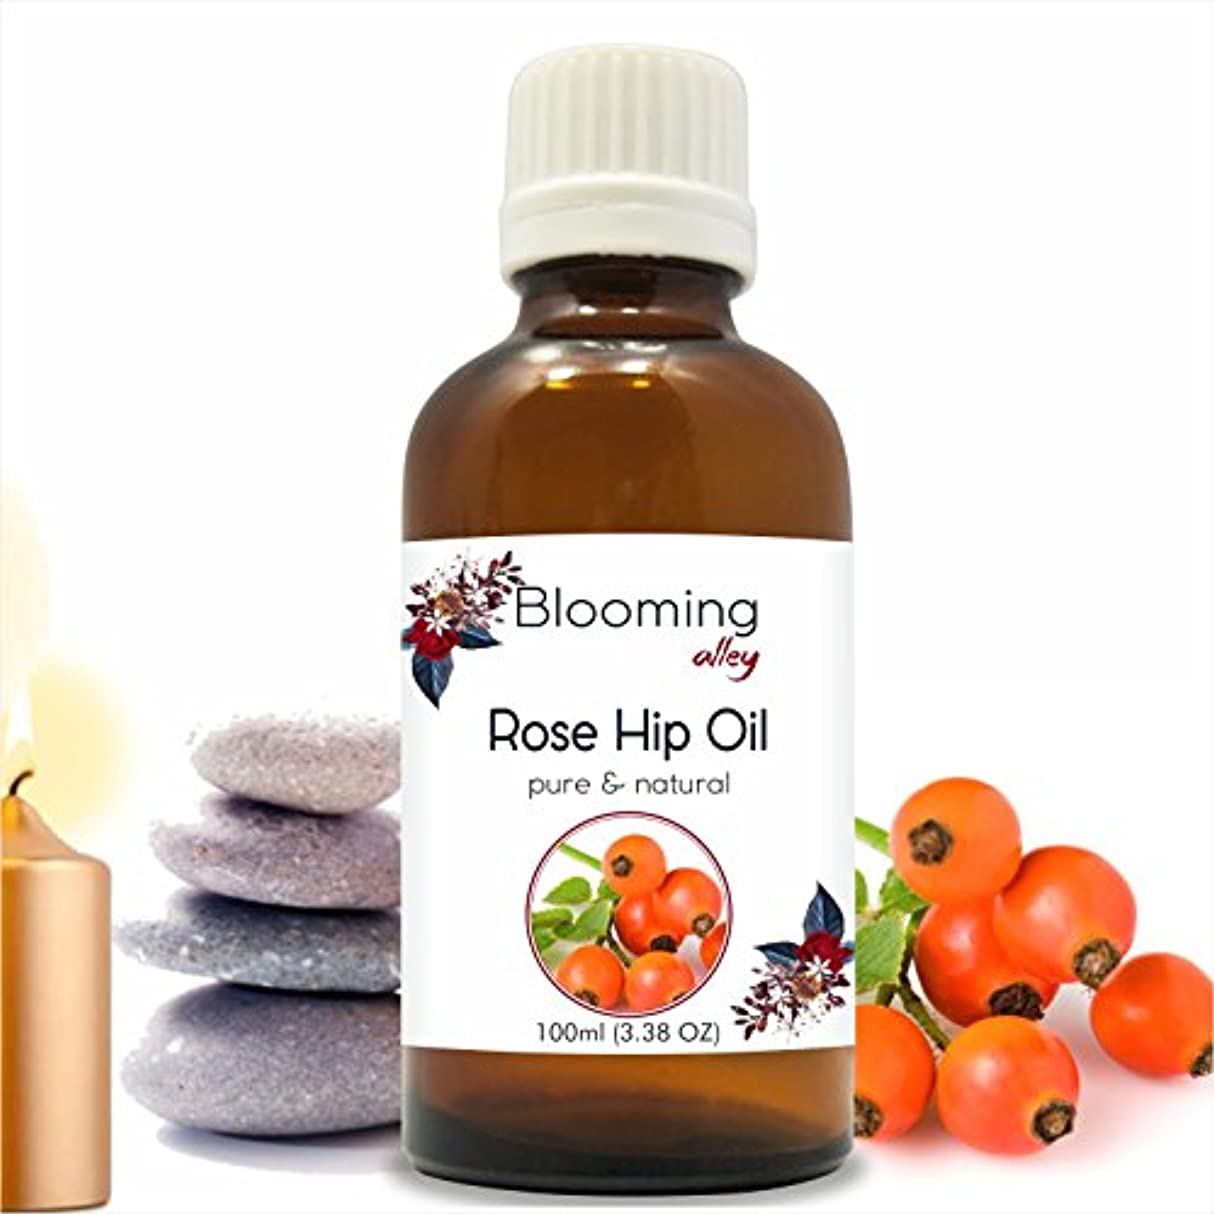 去るスラム研究所Rosehip Oil(Rosa Moschata Or Rosa Rubiginosa) Carrier Oil 100 ml or 3.38 Fl Oz by Blooming Alley